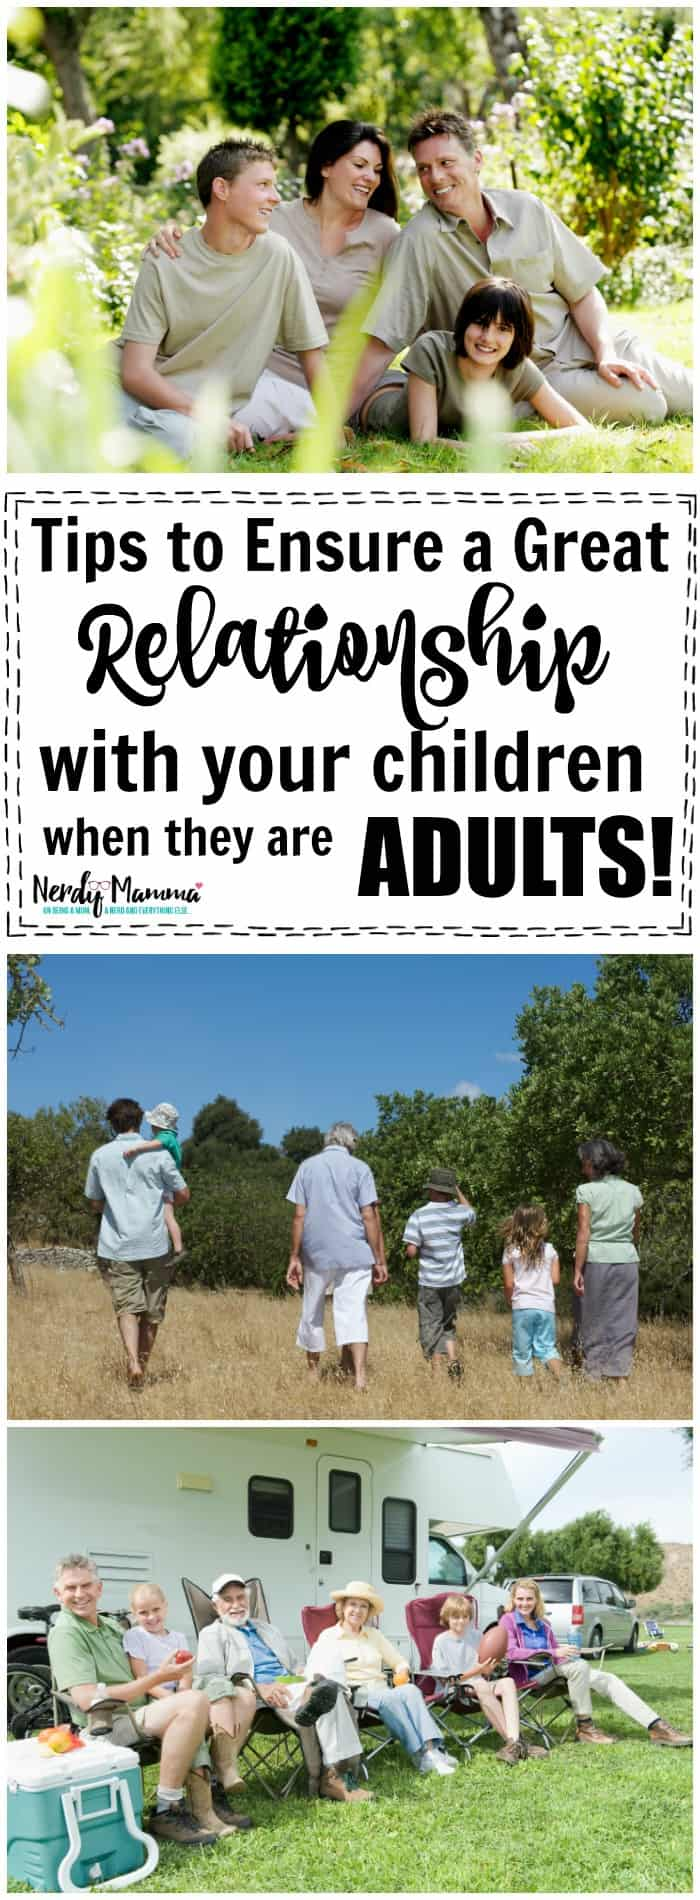 tips to ensure a great relationship with your children when they are adults